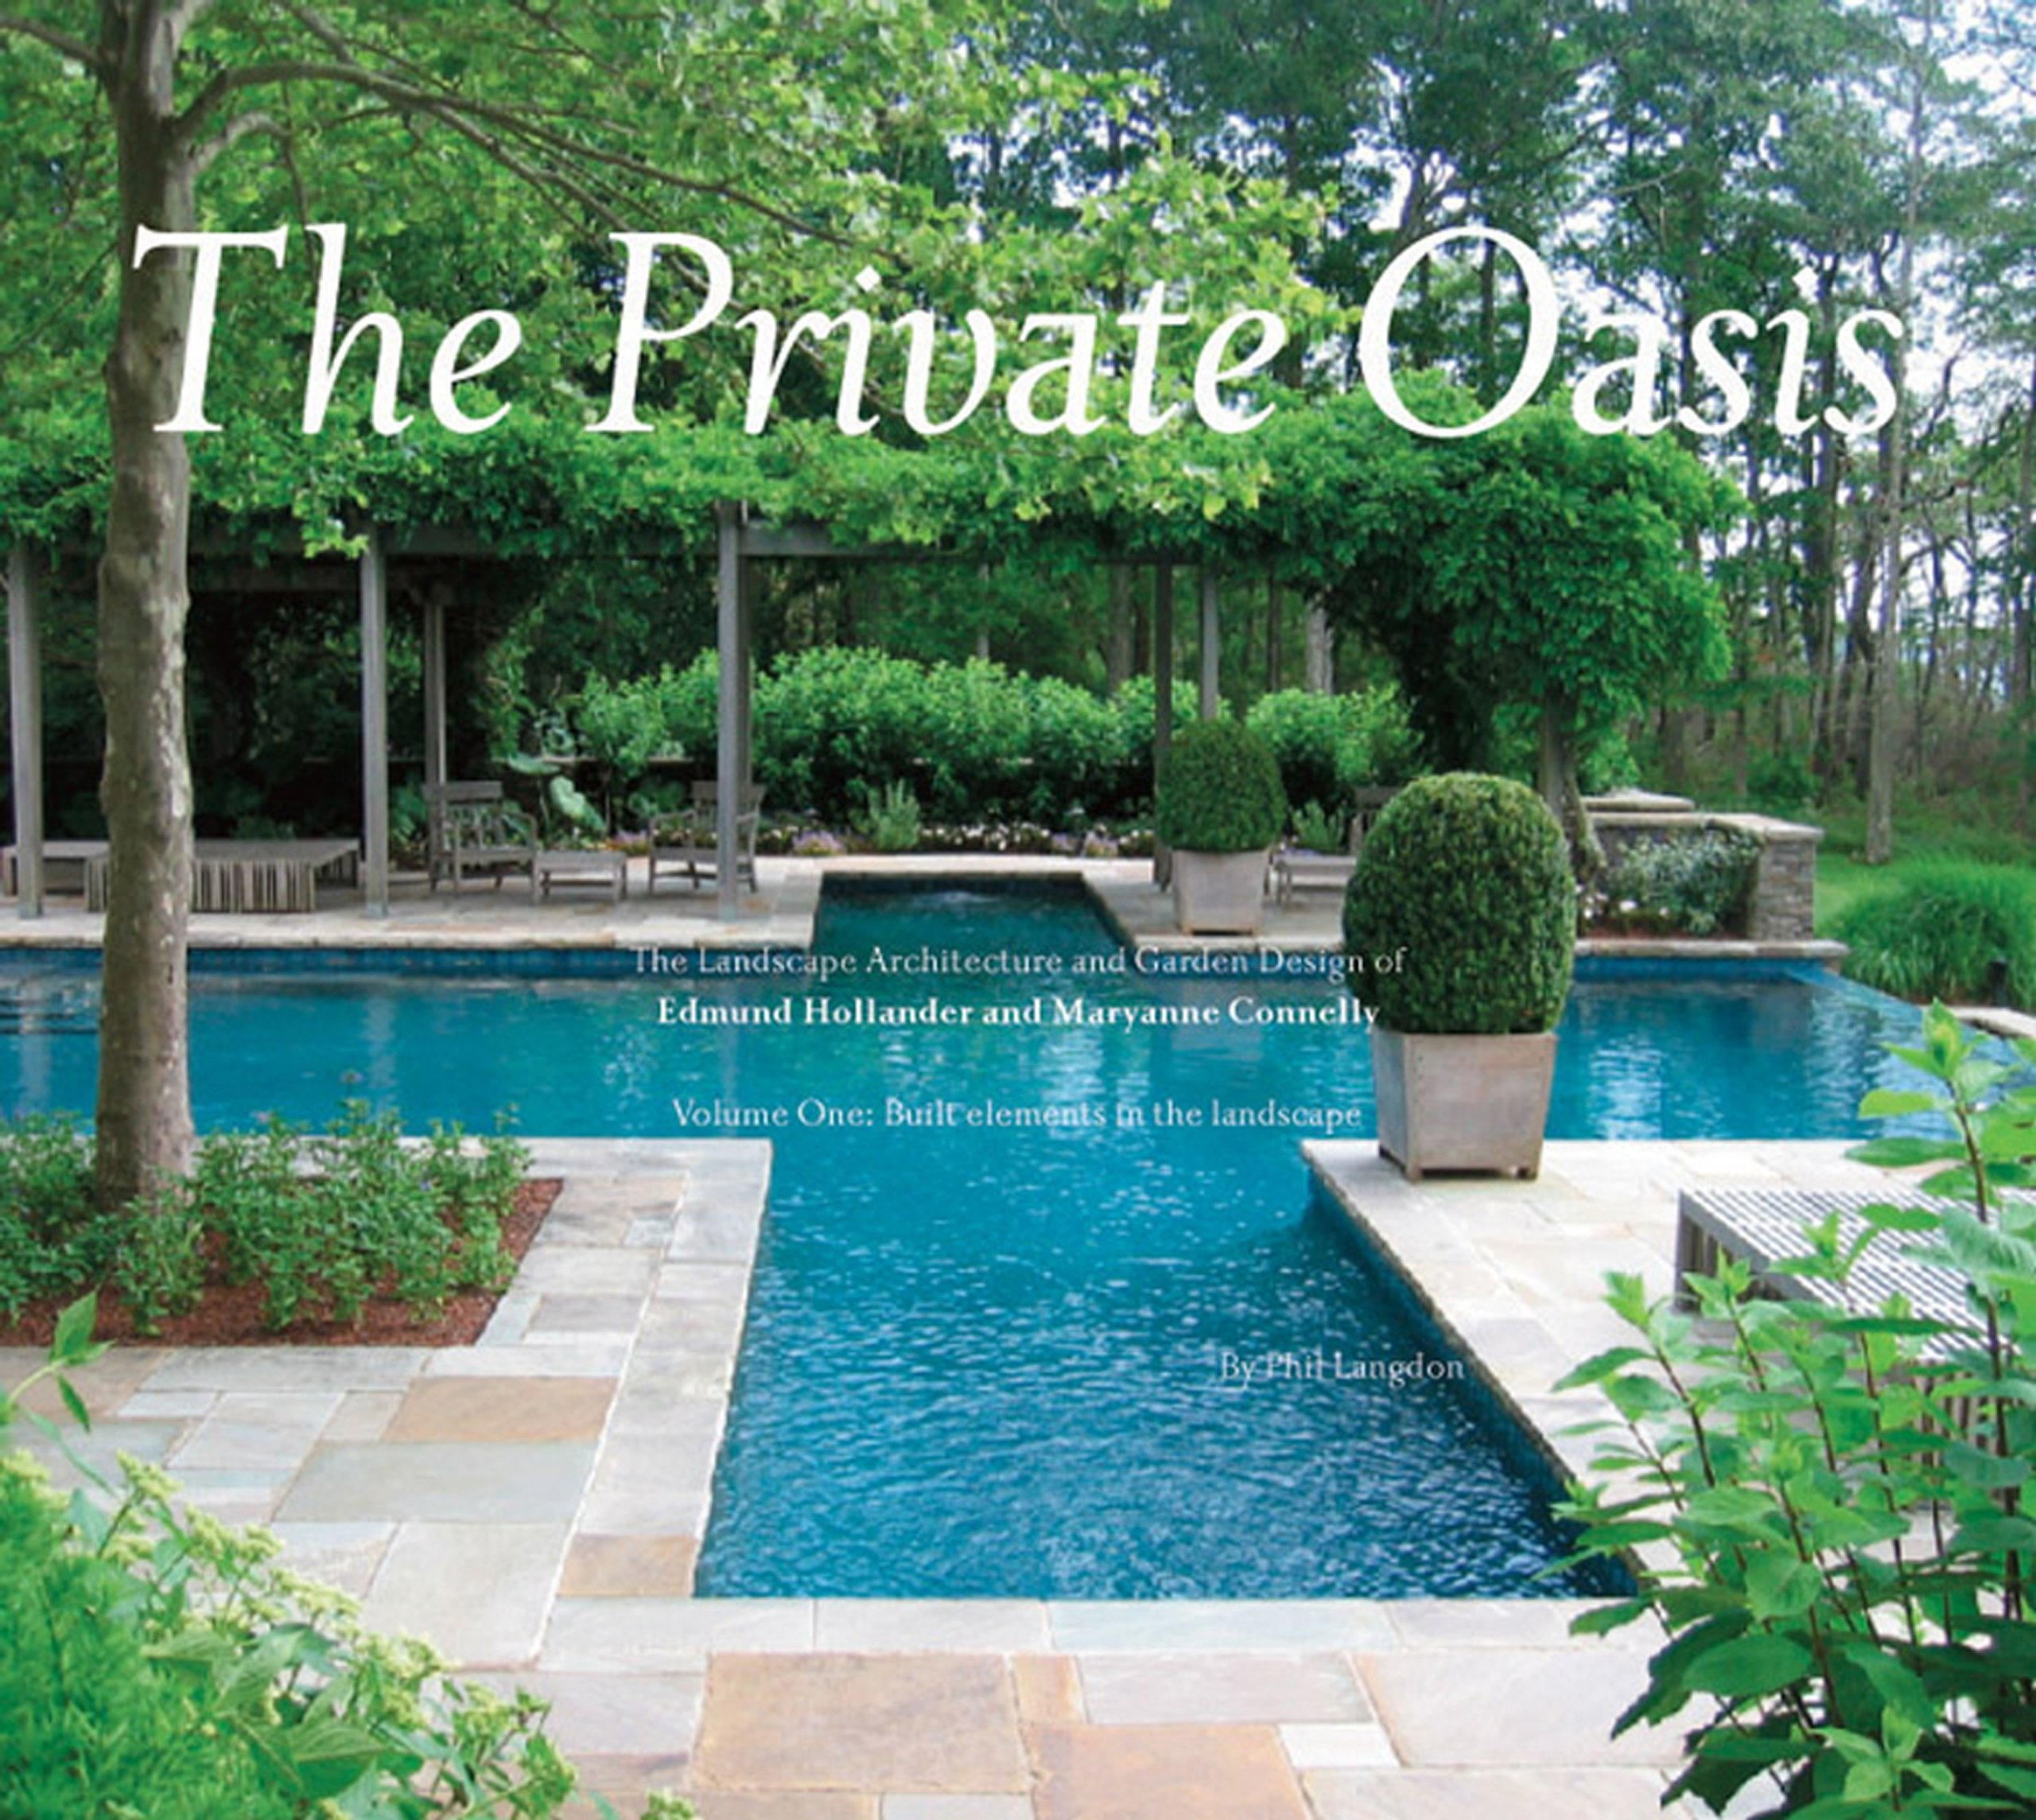 Landscape architects and garden designers on domain design directory - The Private Oasis The Landscape Architecture Of Edmund Hollander Design Philip Langdon 9780982439258 Amazon Com Books